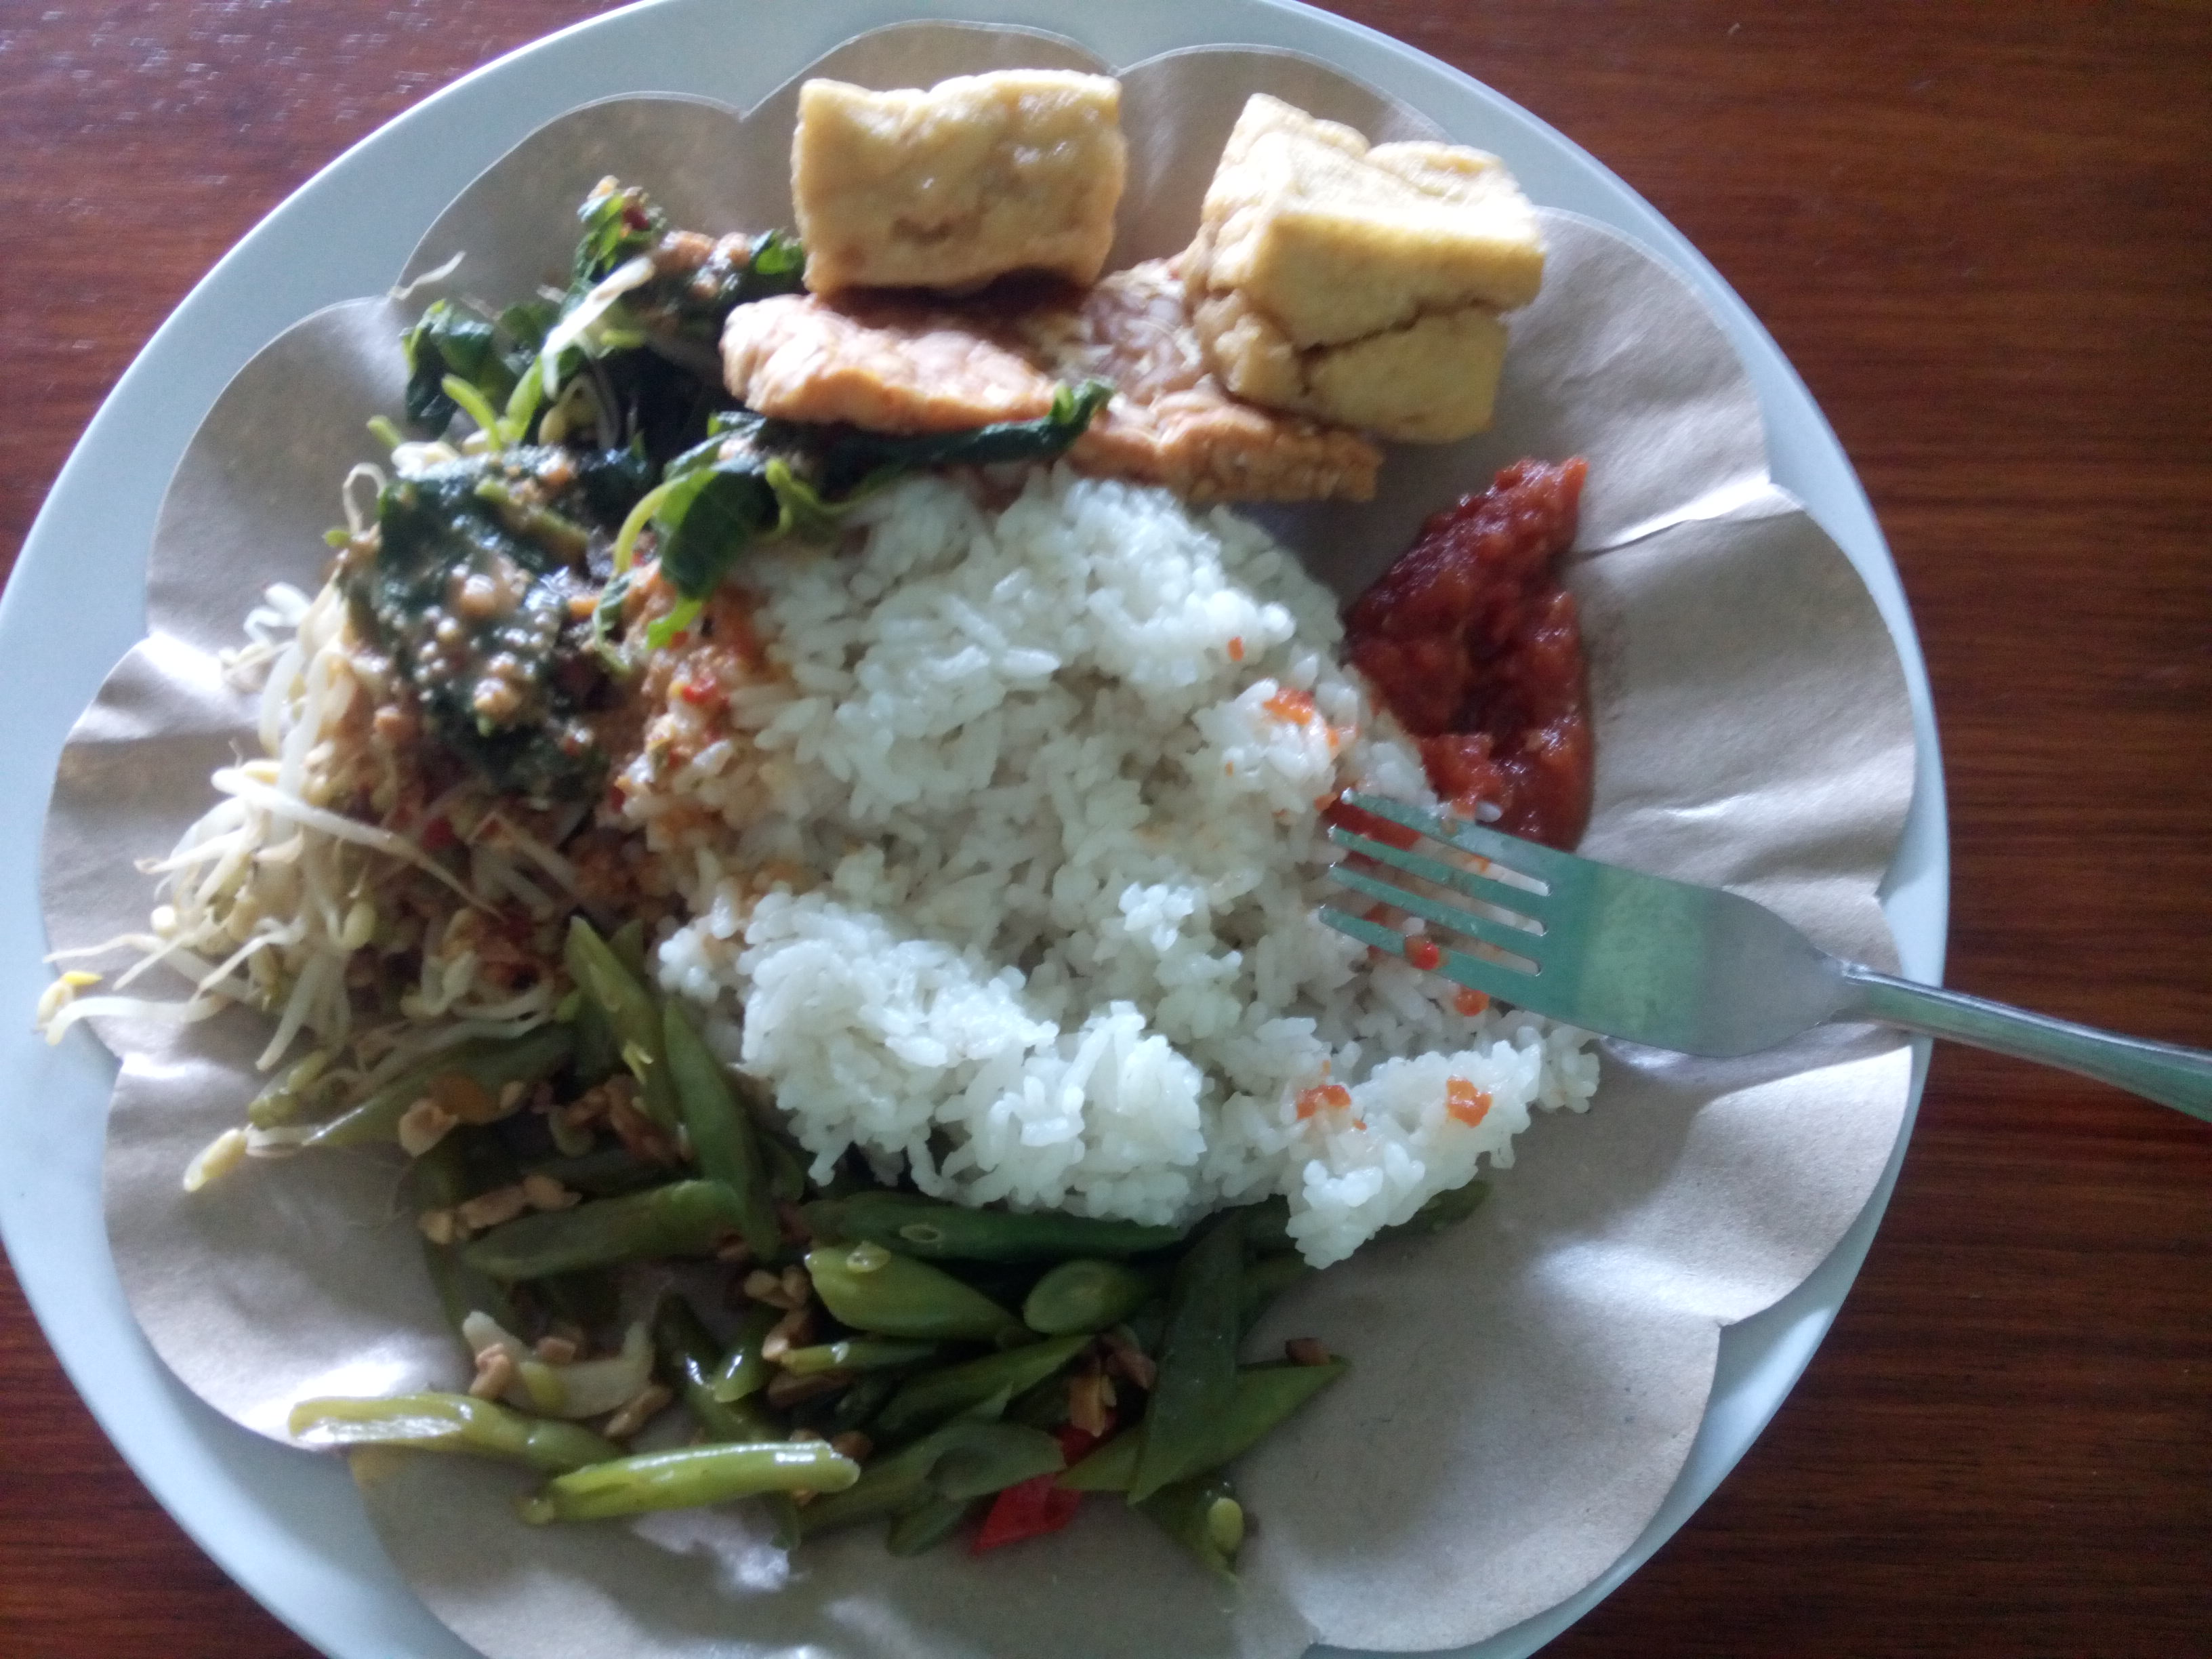 A plate of Indoenisan food